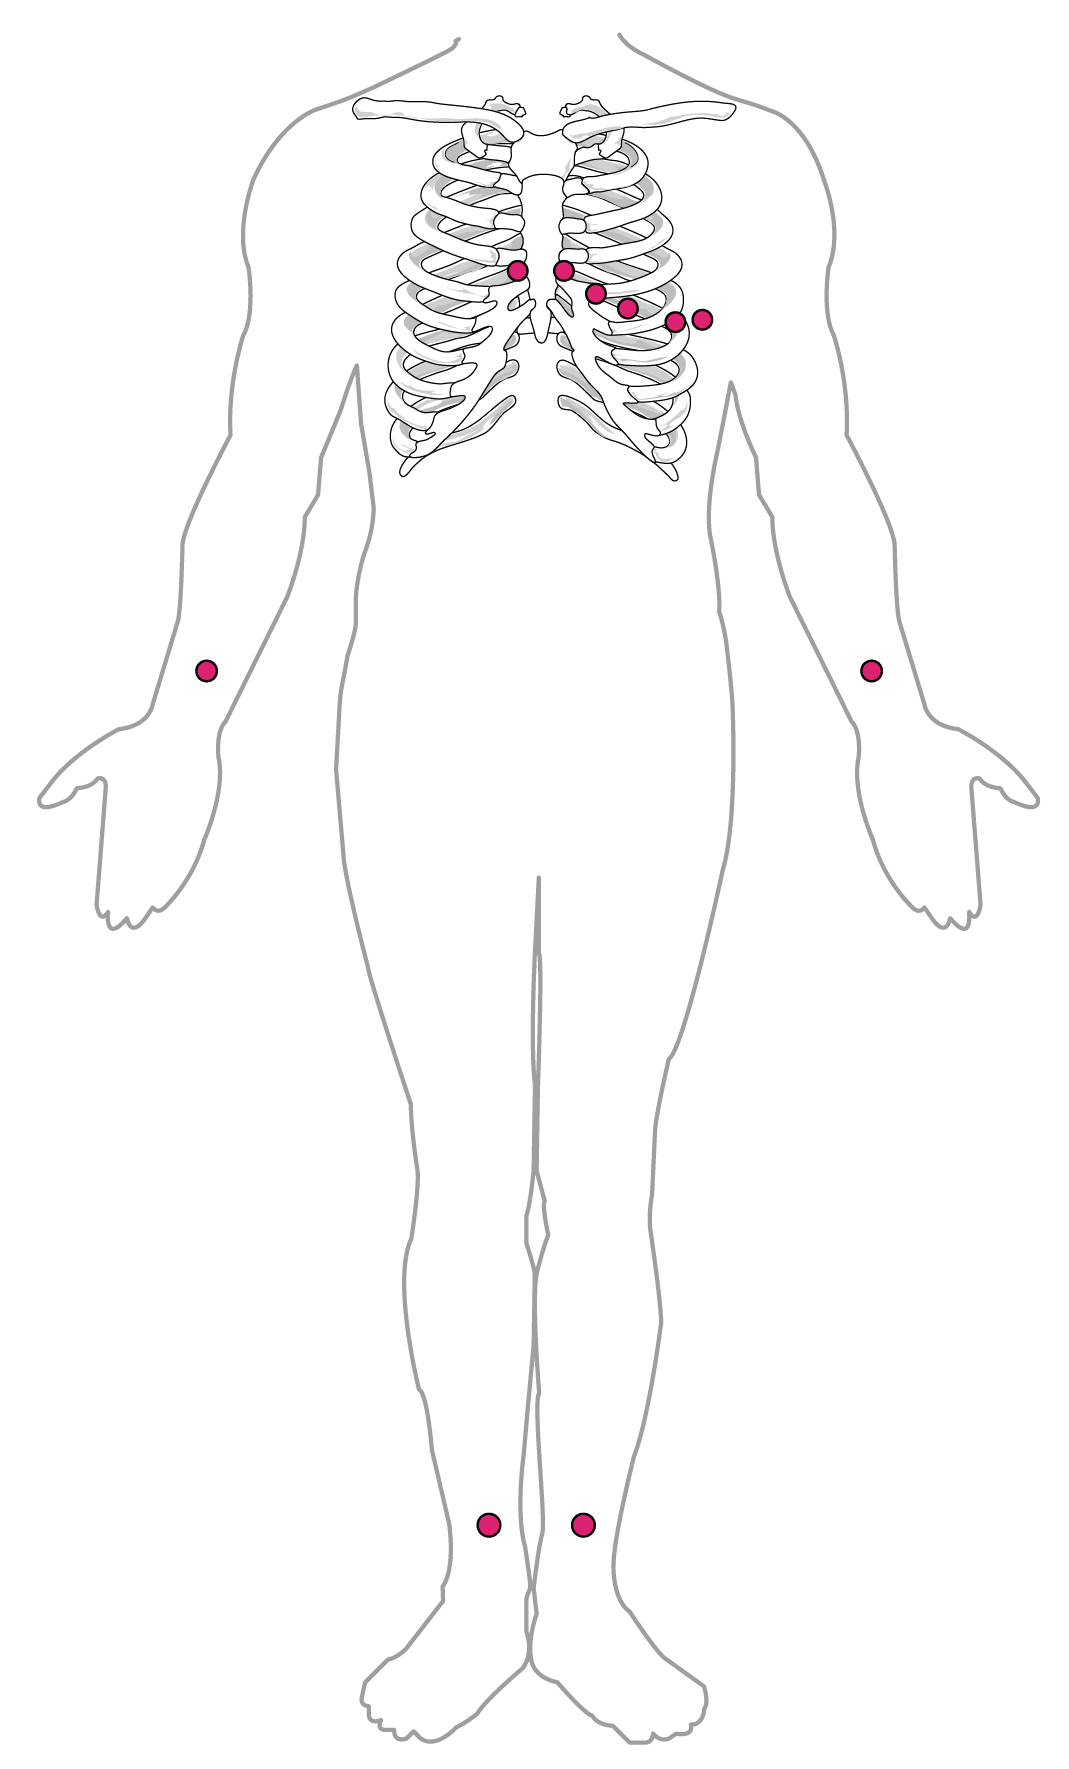 This diagram shows the points where electrodes are placed on the body for an ECG.